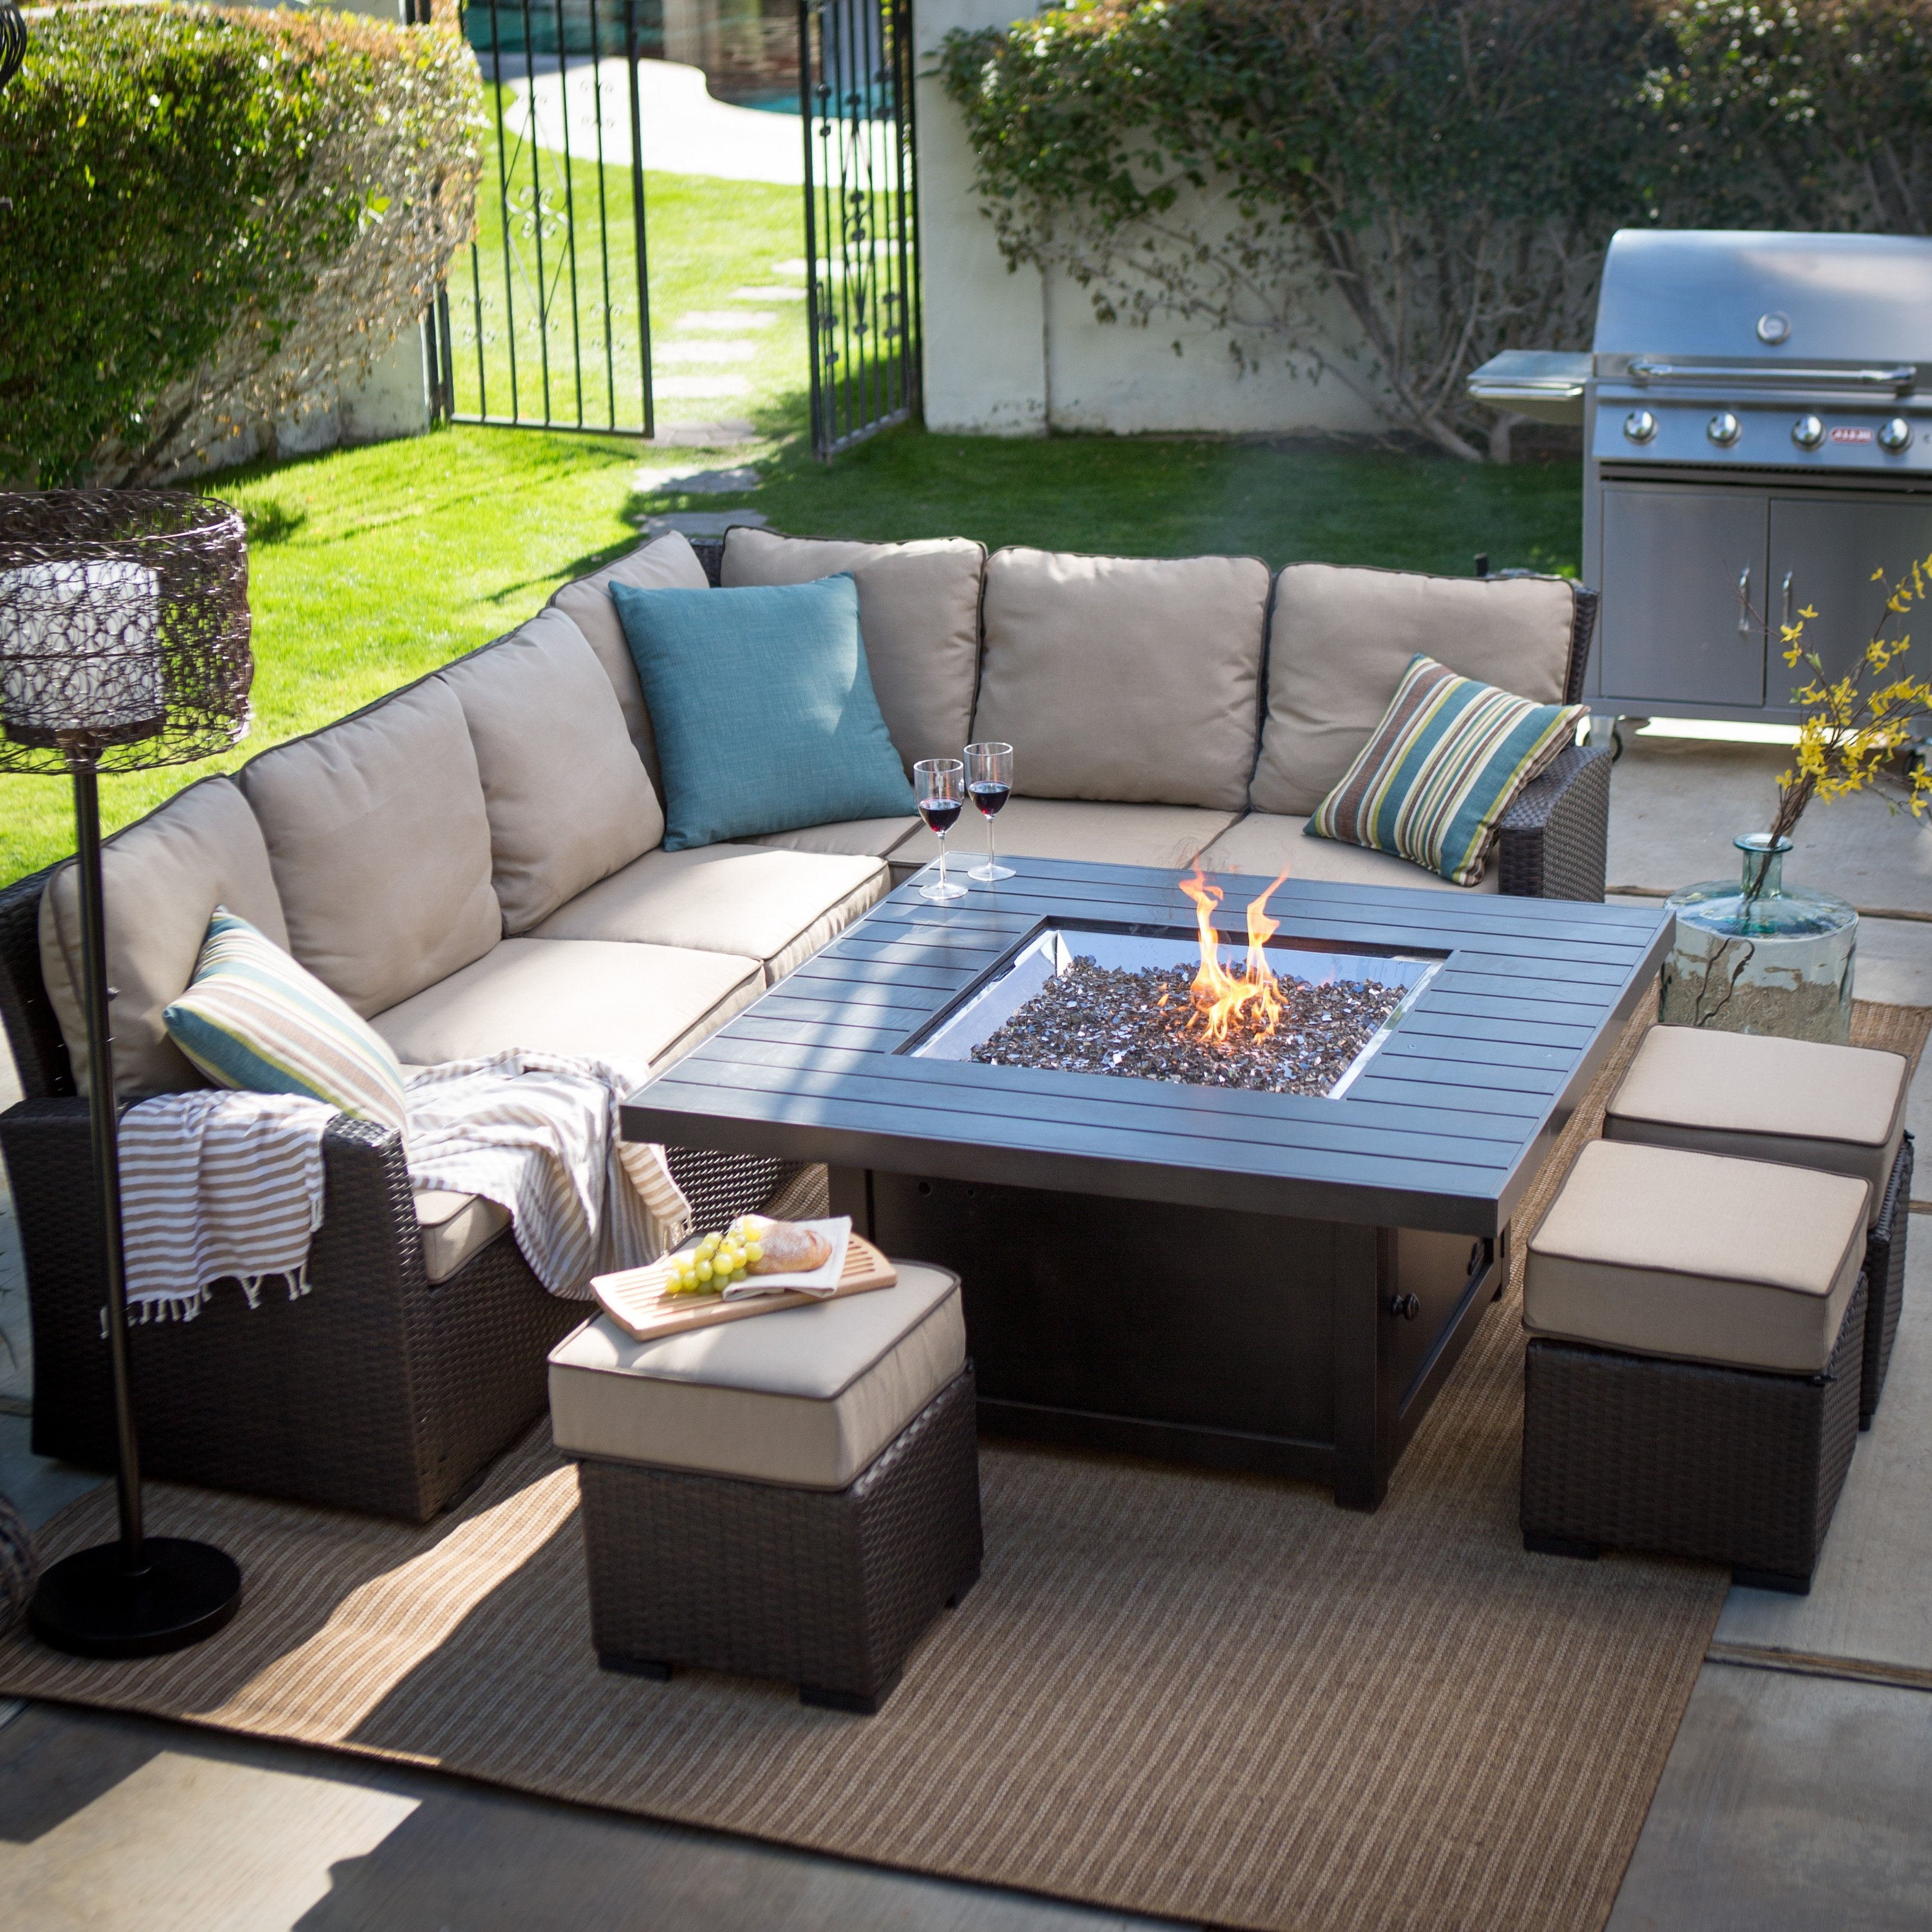 Dining Table With Fire Pit In Middle Verona Height Propane Patio With Well Known Patio Conversation Sets With Dining Table (Gallery 12 of 20)